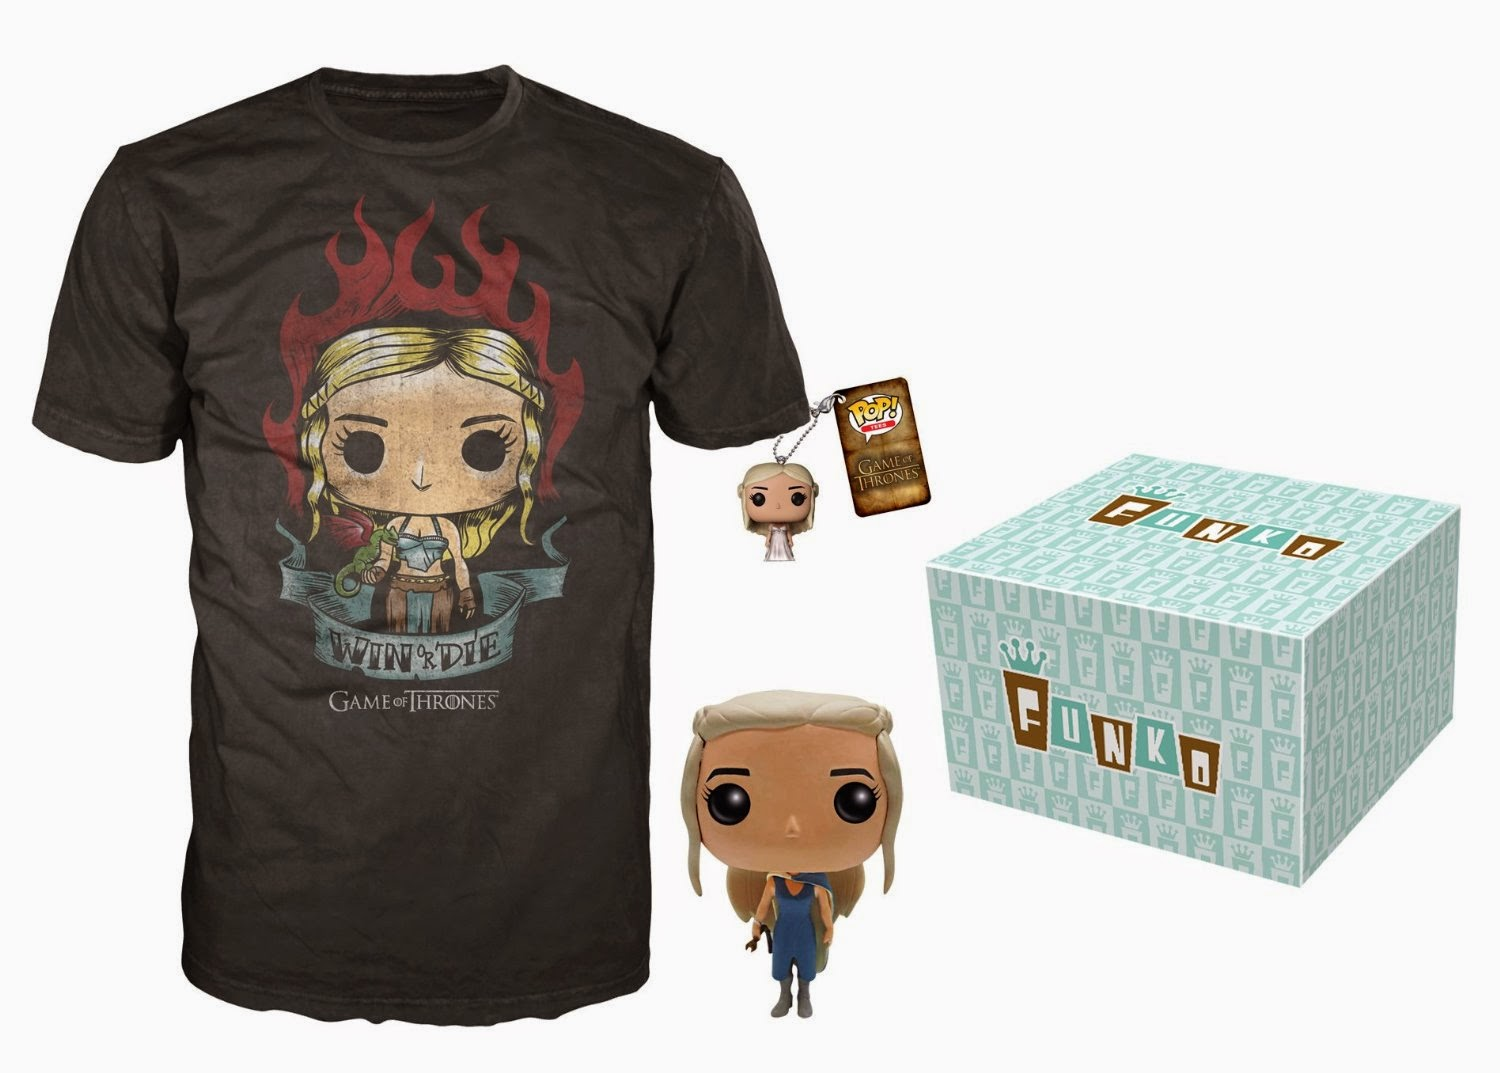 dd614a06 Amazon Exclusive Game of Thrones Pop! Vinyl Figure & T-Shirt Bundles by  Funko